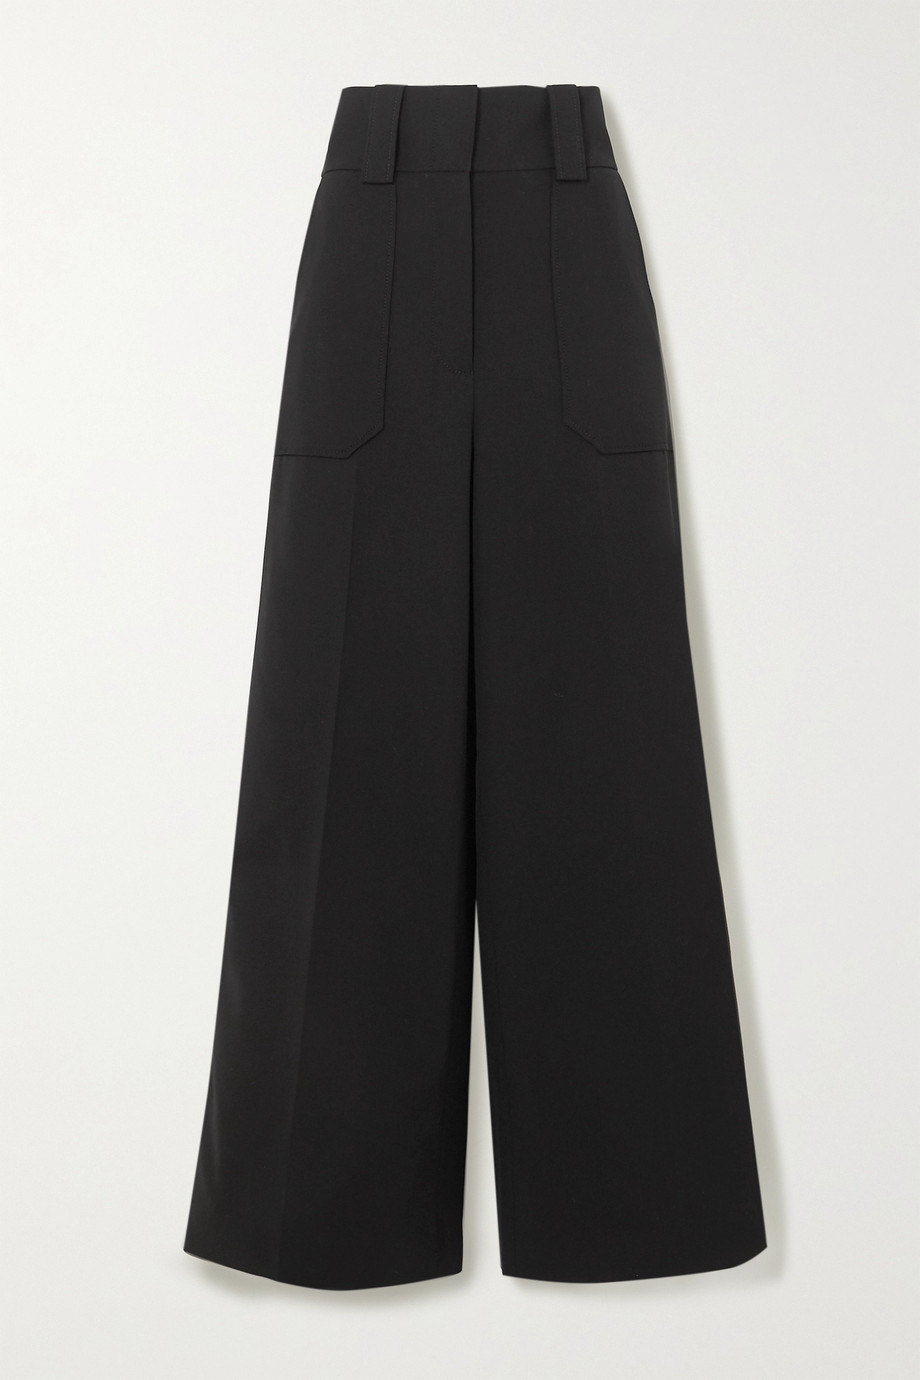 Stella McCartney Wool-blend wide-leg pants